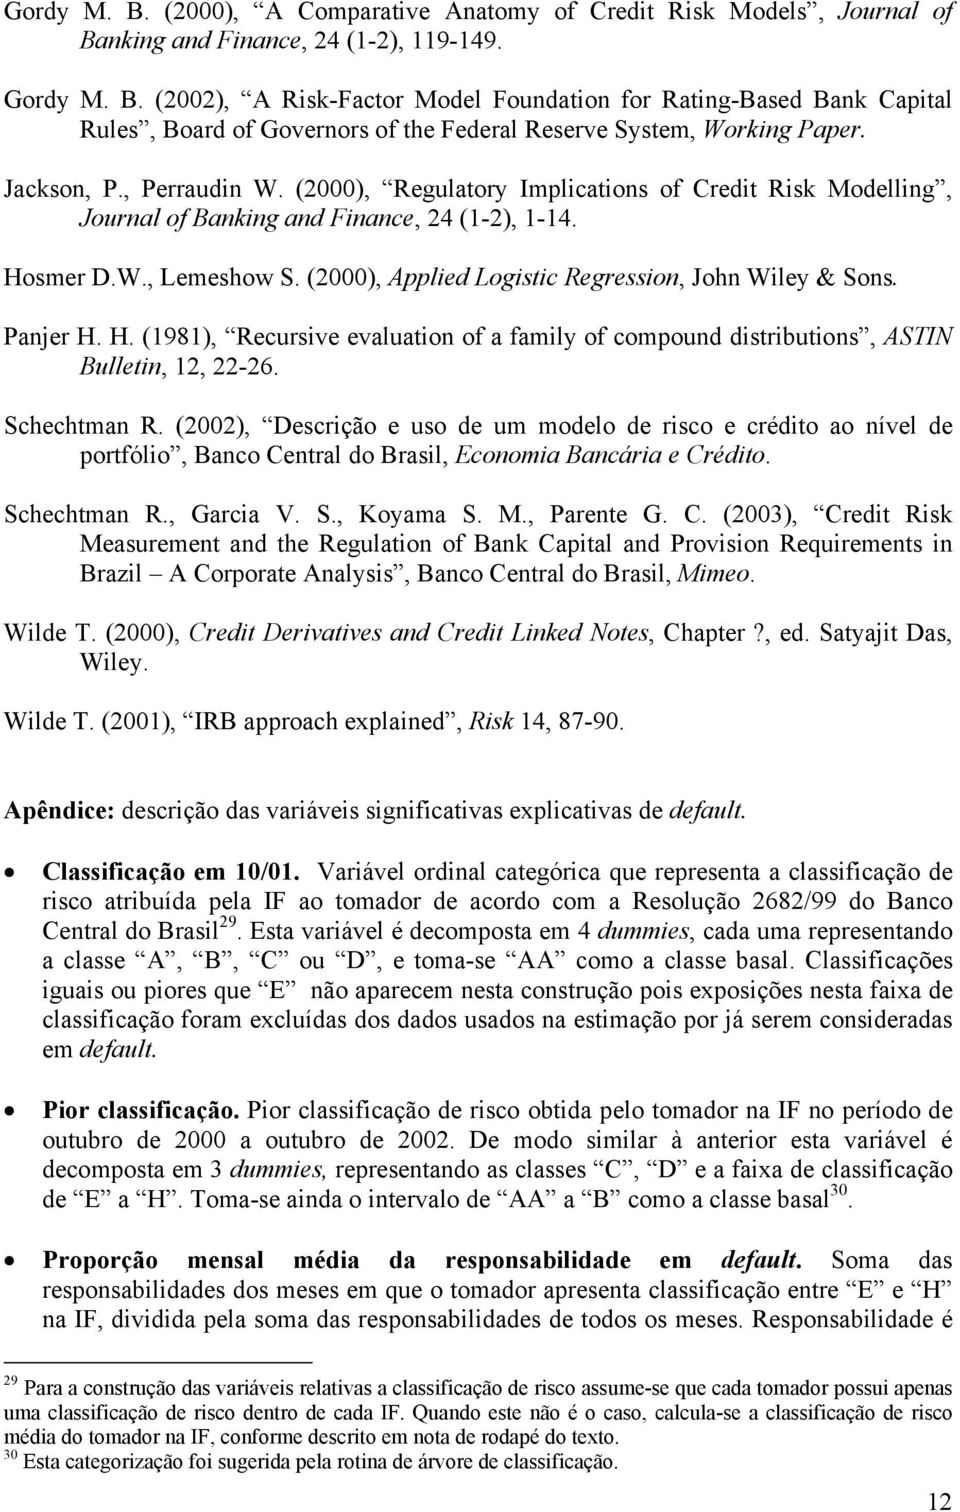 (2000), Applied Logistic Regression, John Wiley & Sons. Panjer H. H. (1981), Recursive evaluation of a family of compound distributions, ASTIN Bulletin, 12, 22-26. Schechtman R.